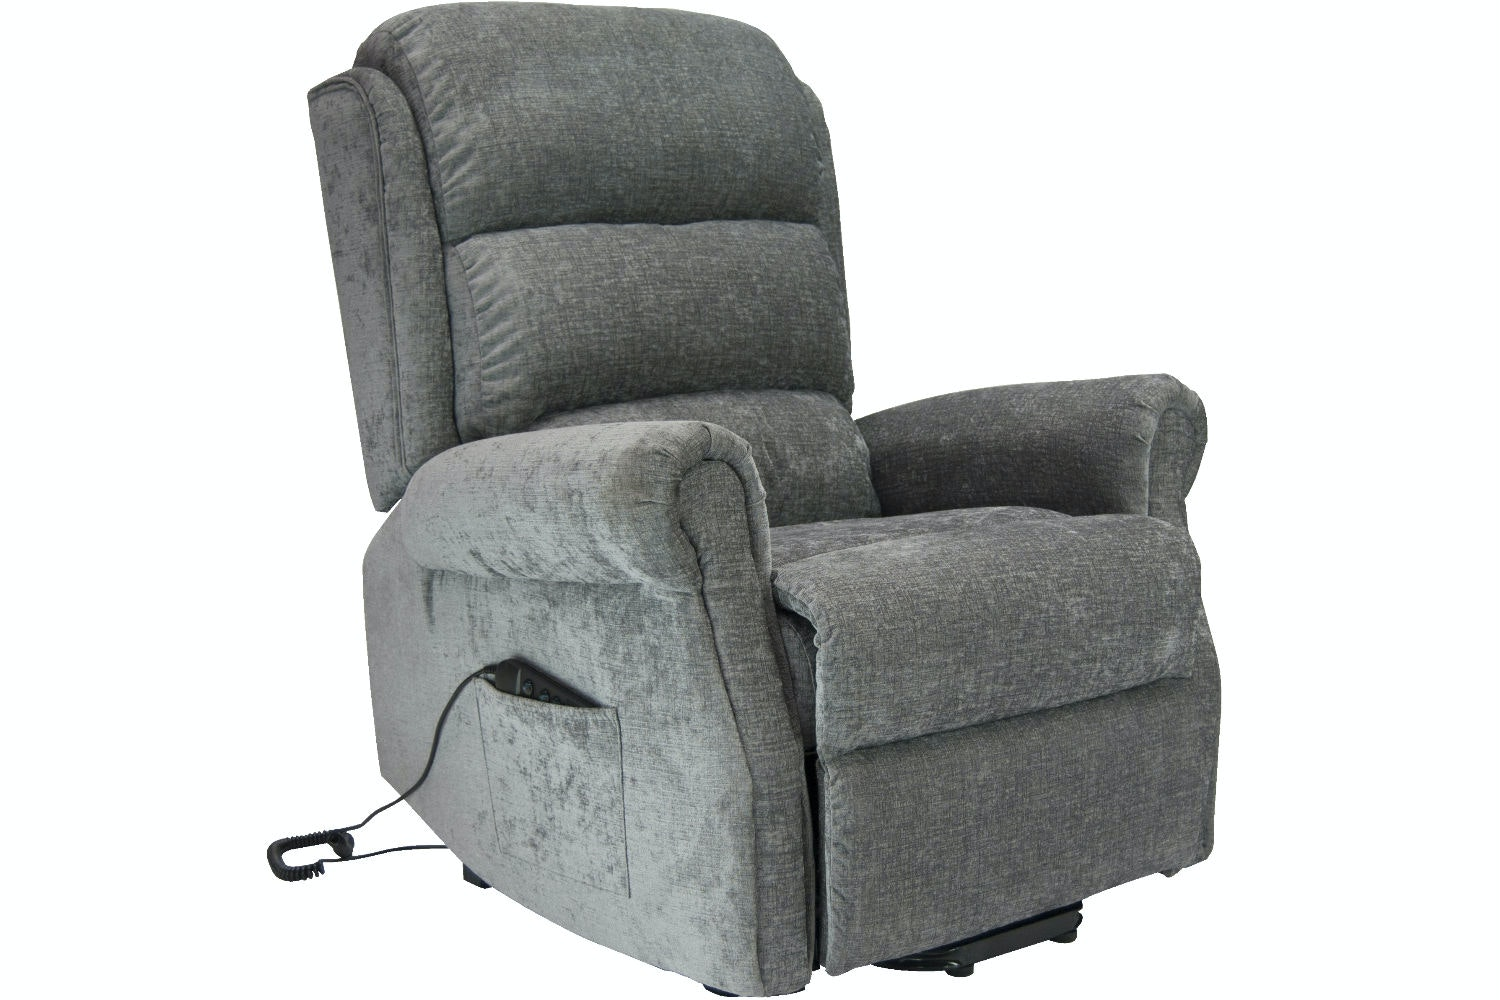 Hudson Recliner Chair Steel